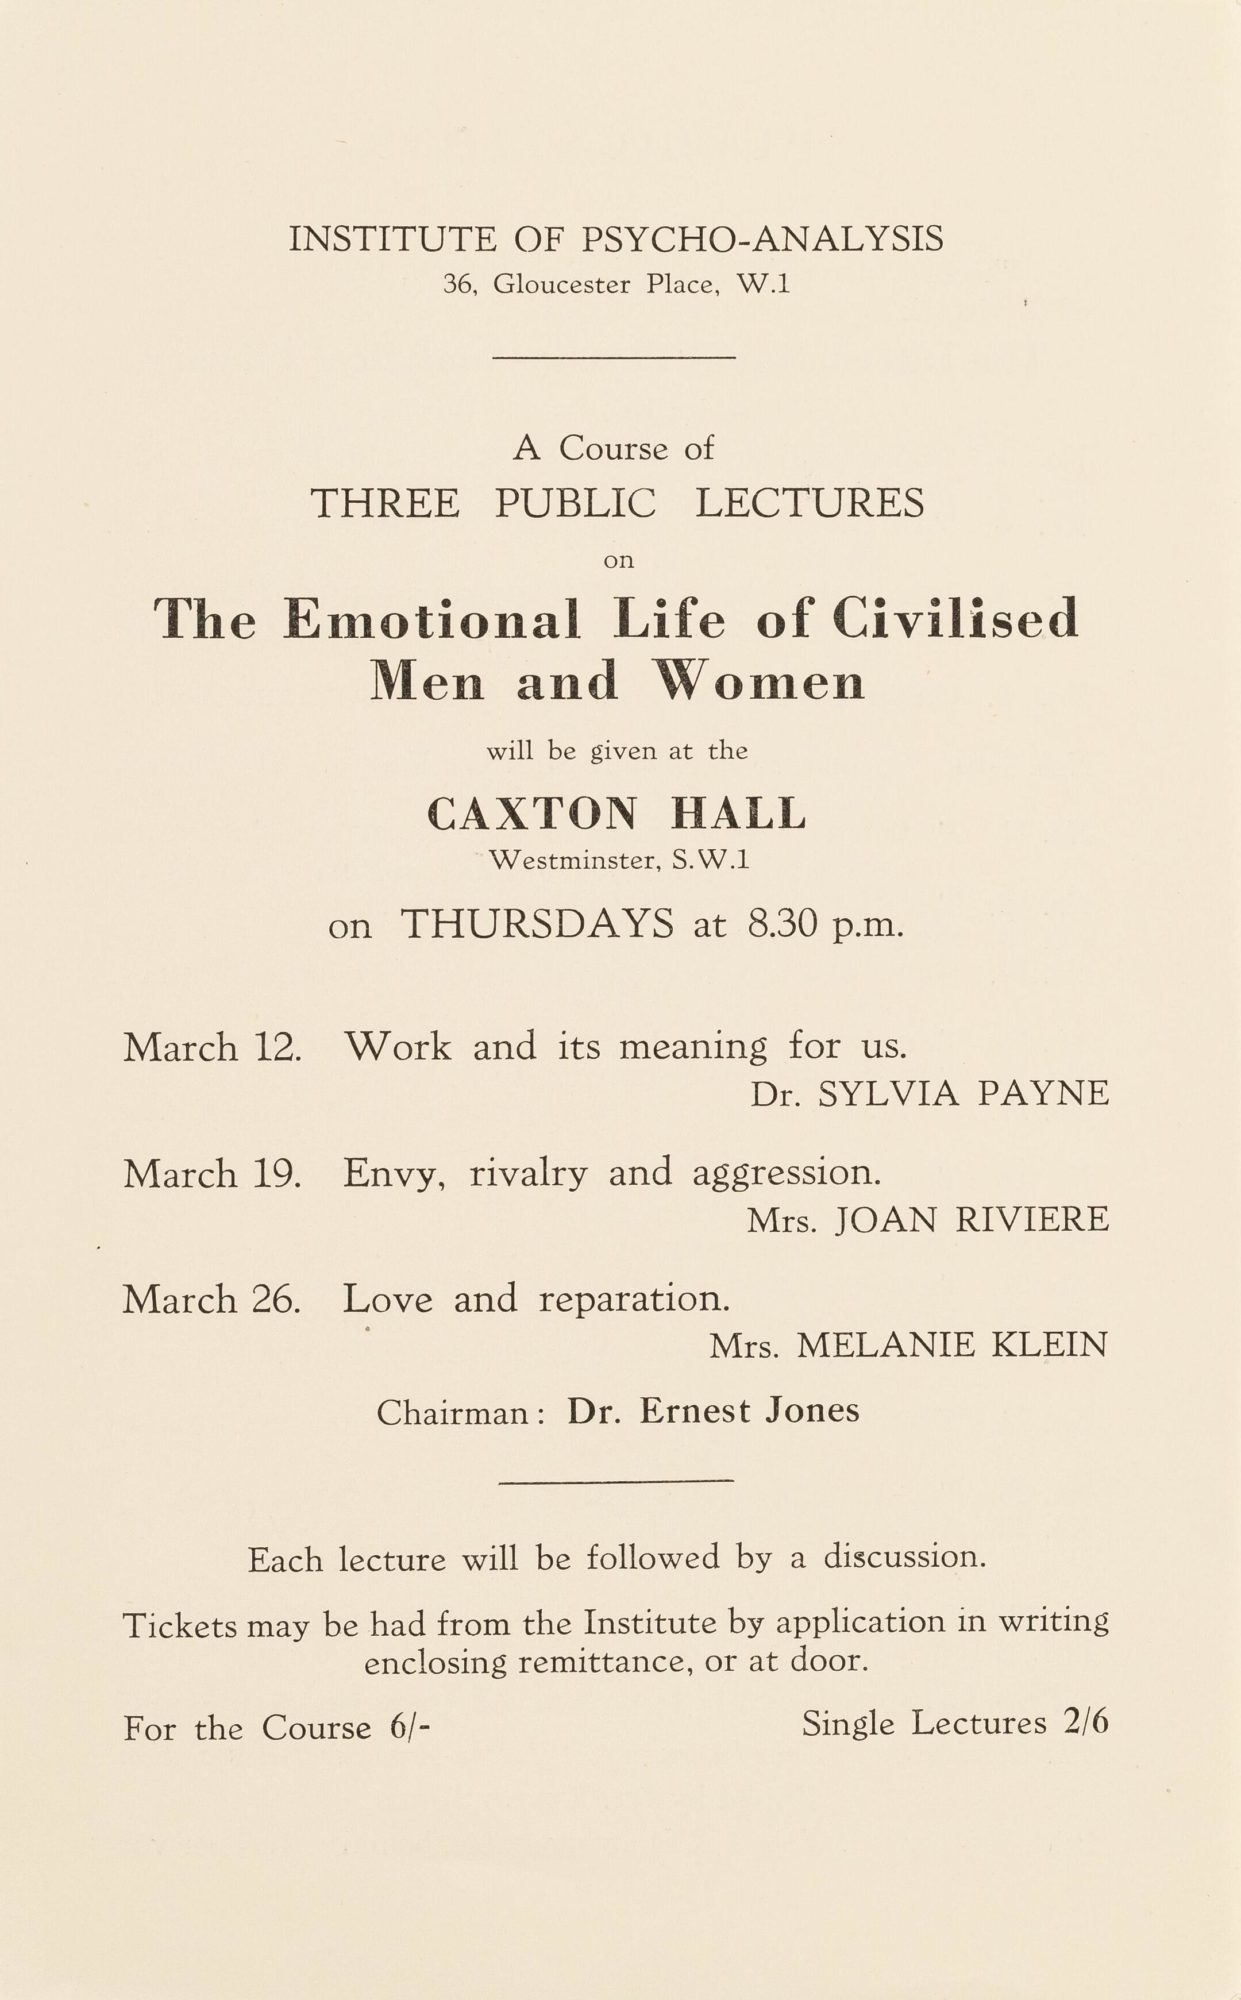 Advertisement for a series of lectures at Caxton Hall given by Klein, Joan Riviere and Sylvia Payne